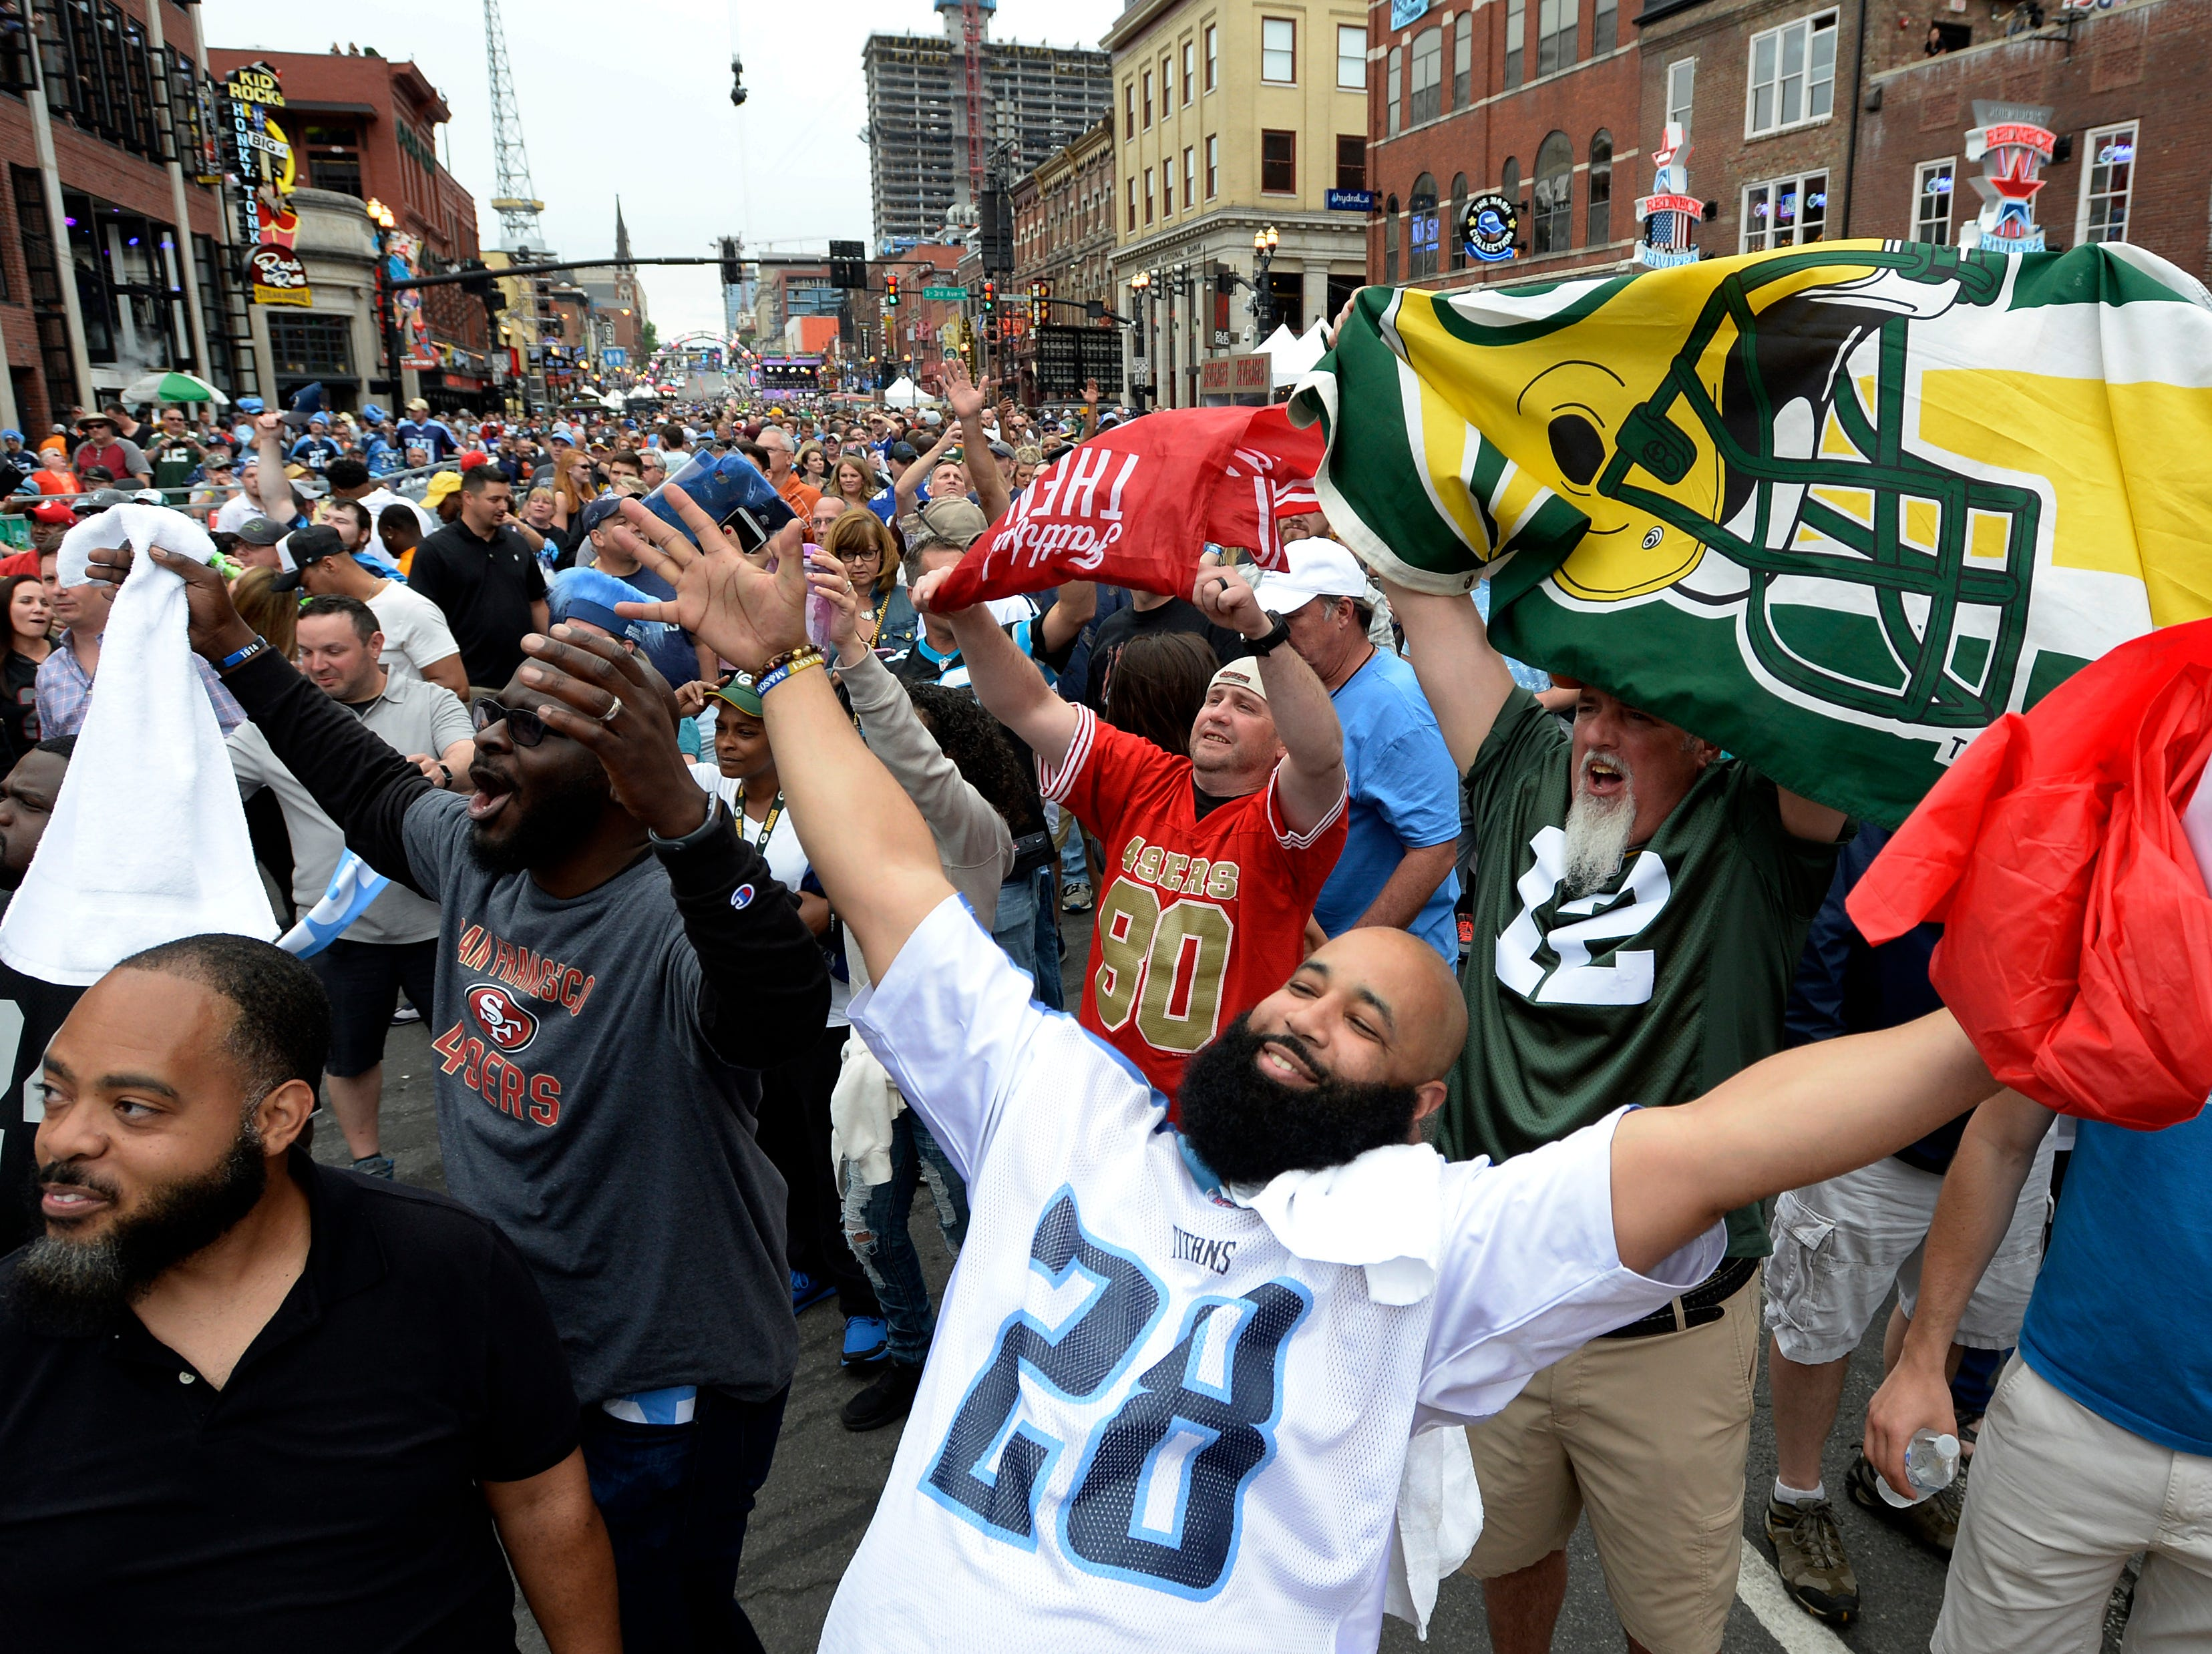 Tennessee Titans fan, Khayree Northcross, bottom center, celebrates on Lower Broadway as he and other fans wait for the start of the of the NFL Draft on Thursday, April 25, 2019, in Nashville, Tenn.